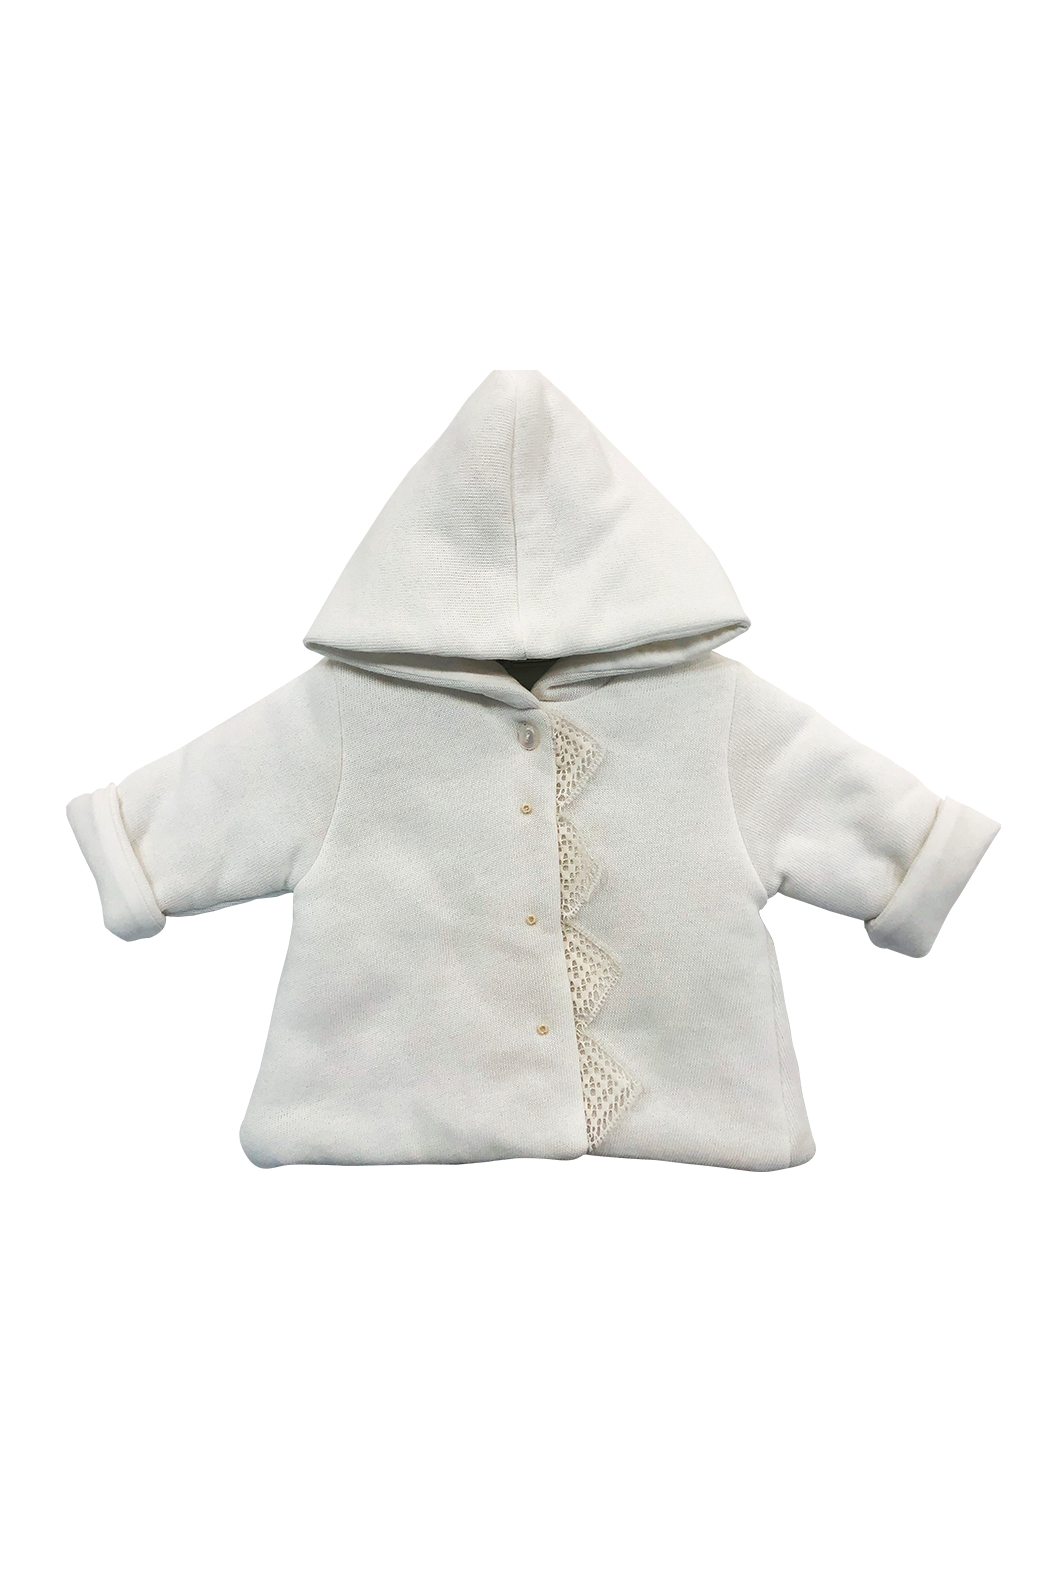 LA MASCOT  BABY HOODED JACKET WITH LACE EDGE BY ITALY - Front Cropped Image